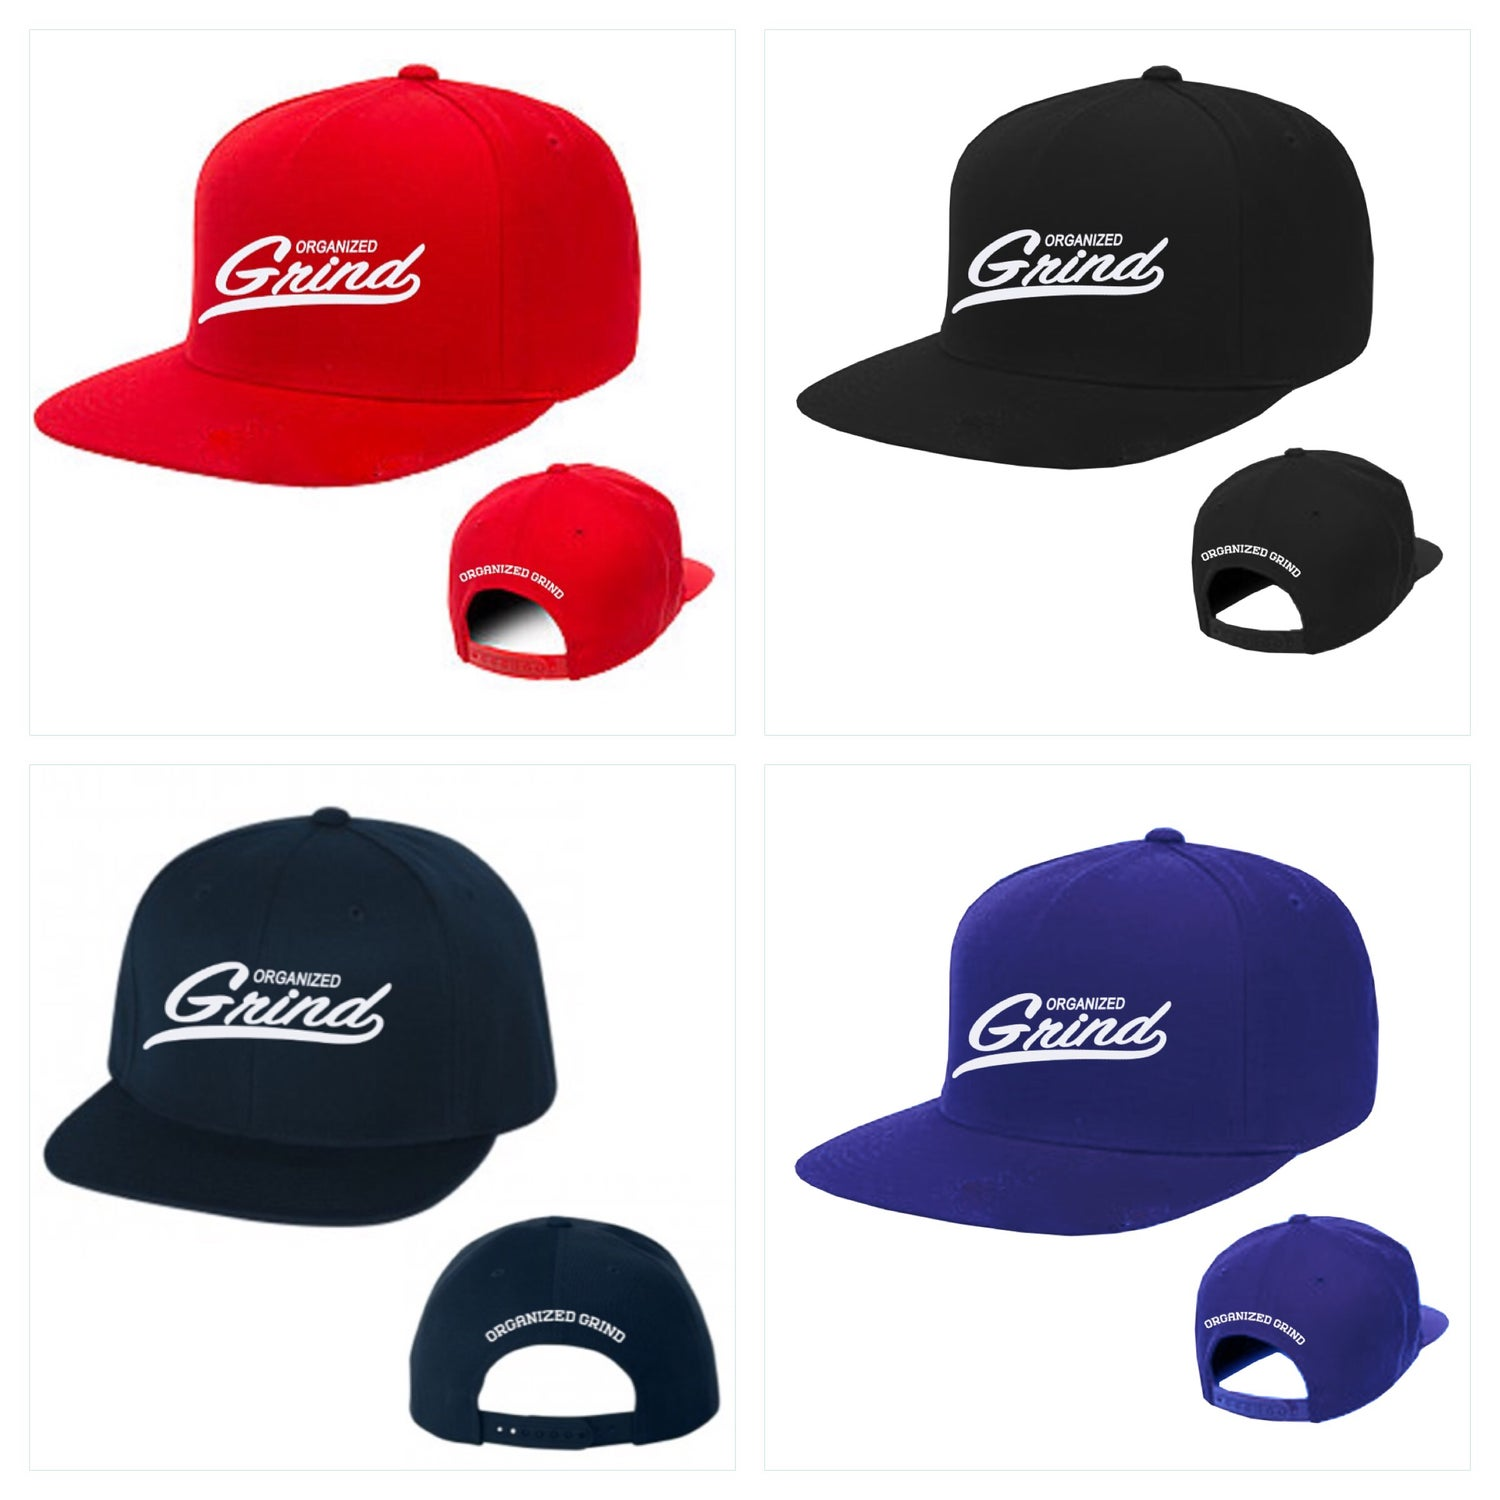 Image of New - OG Team Snapbacks